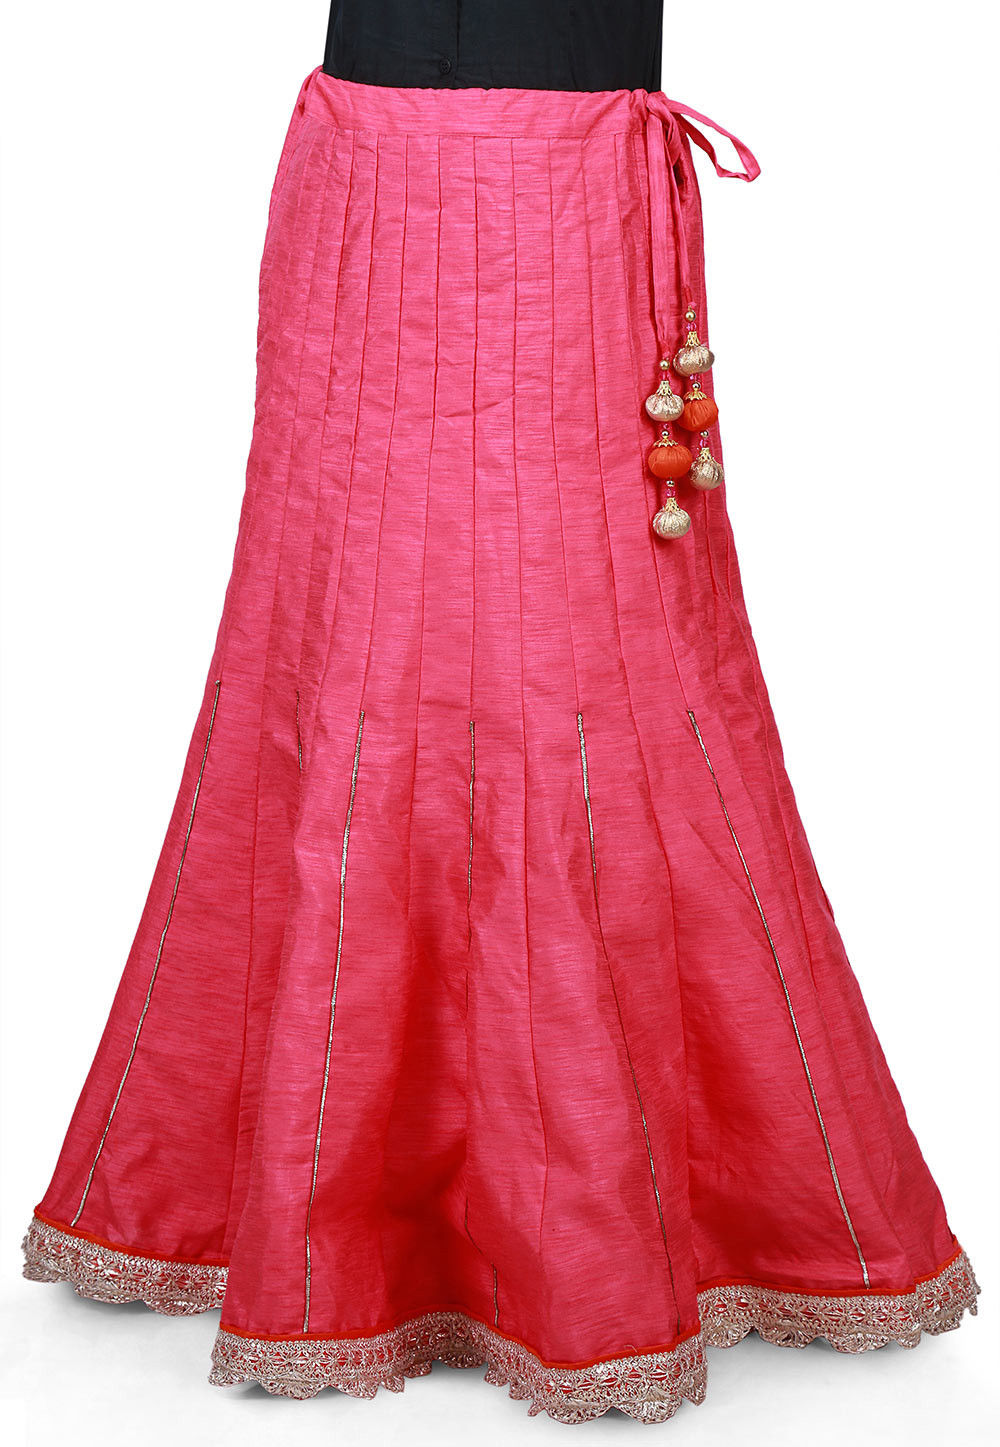 Scallop Border Bhagalpuri Silk Long Skirt in Pink